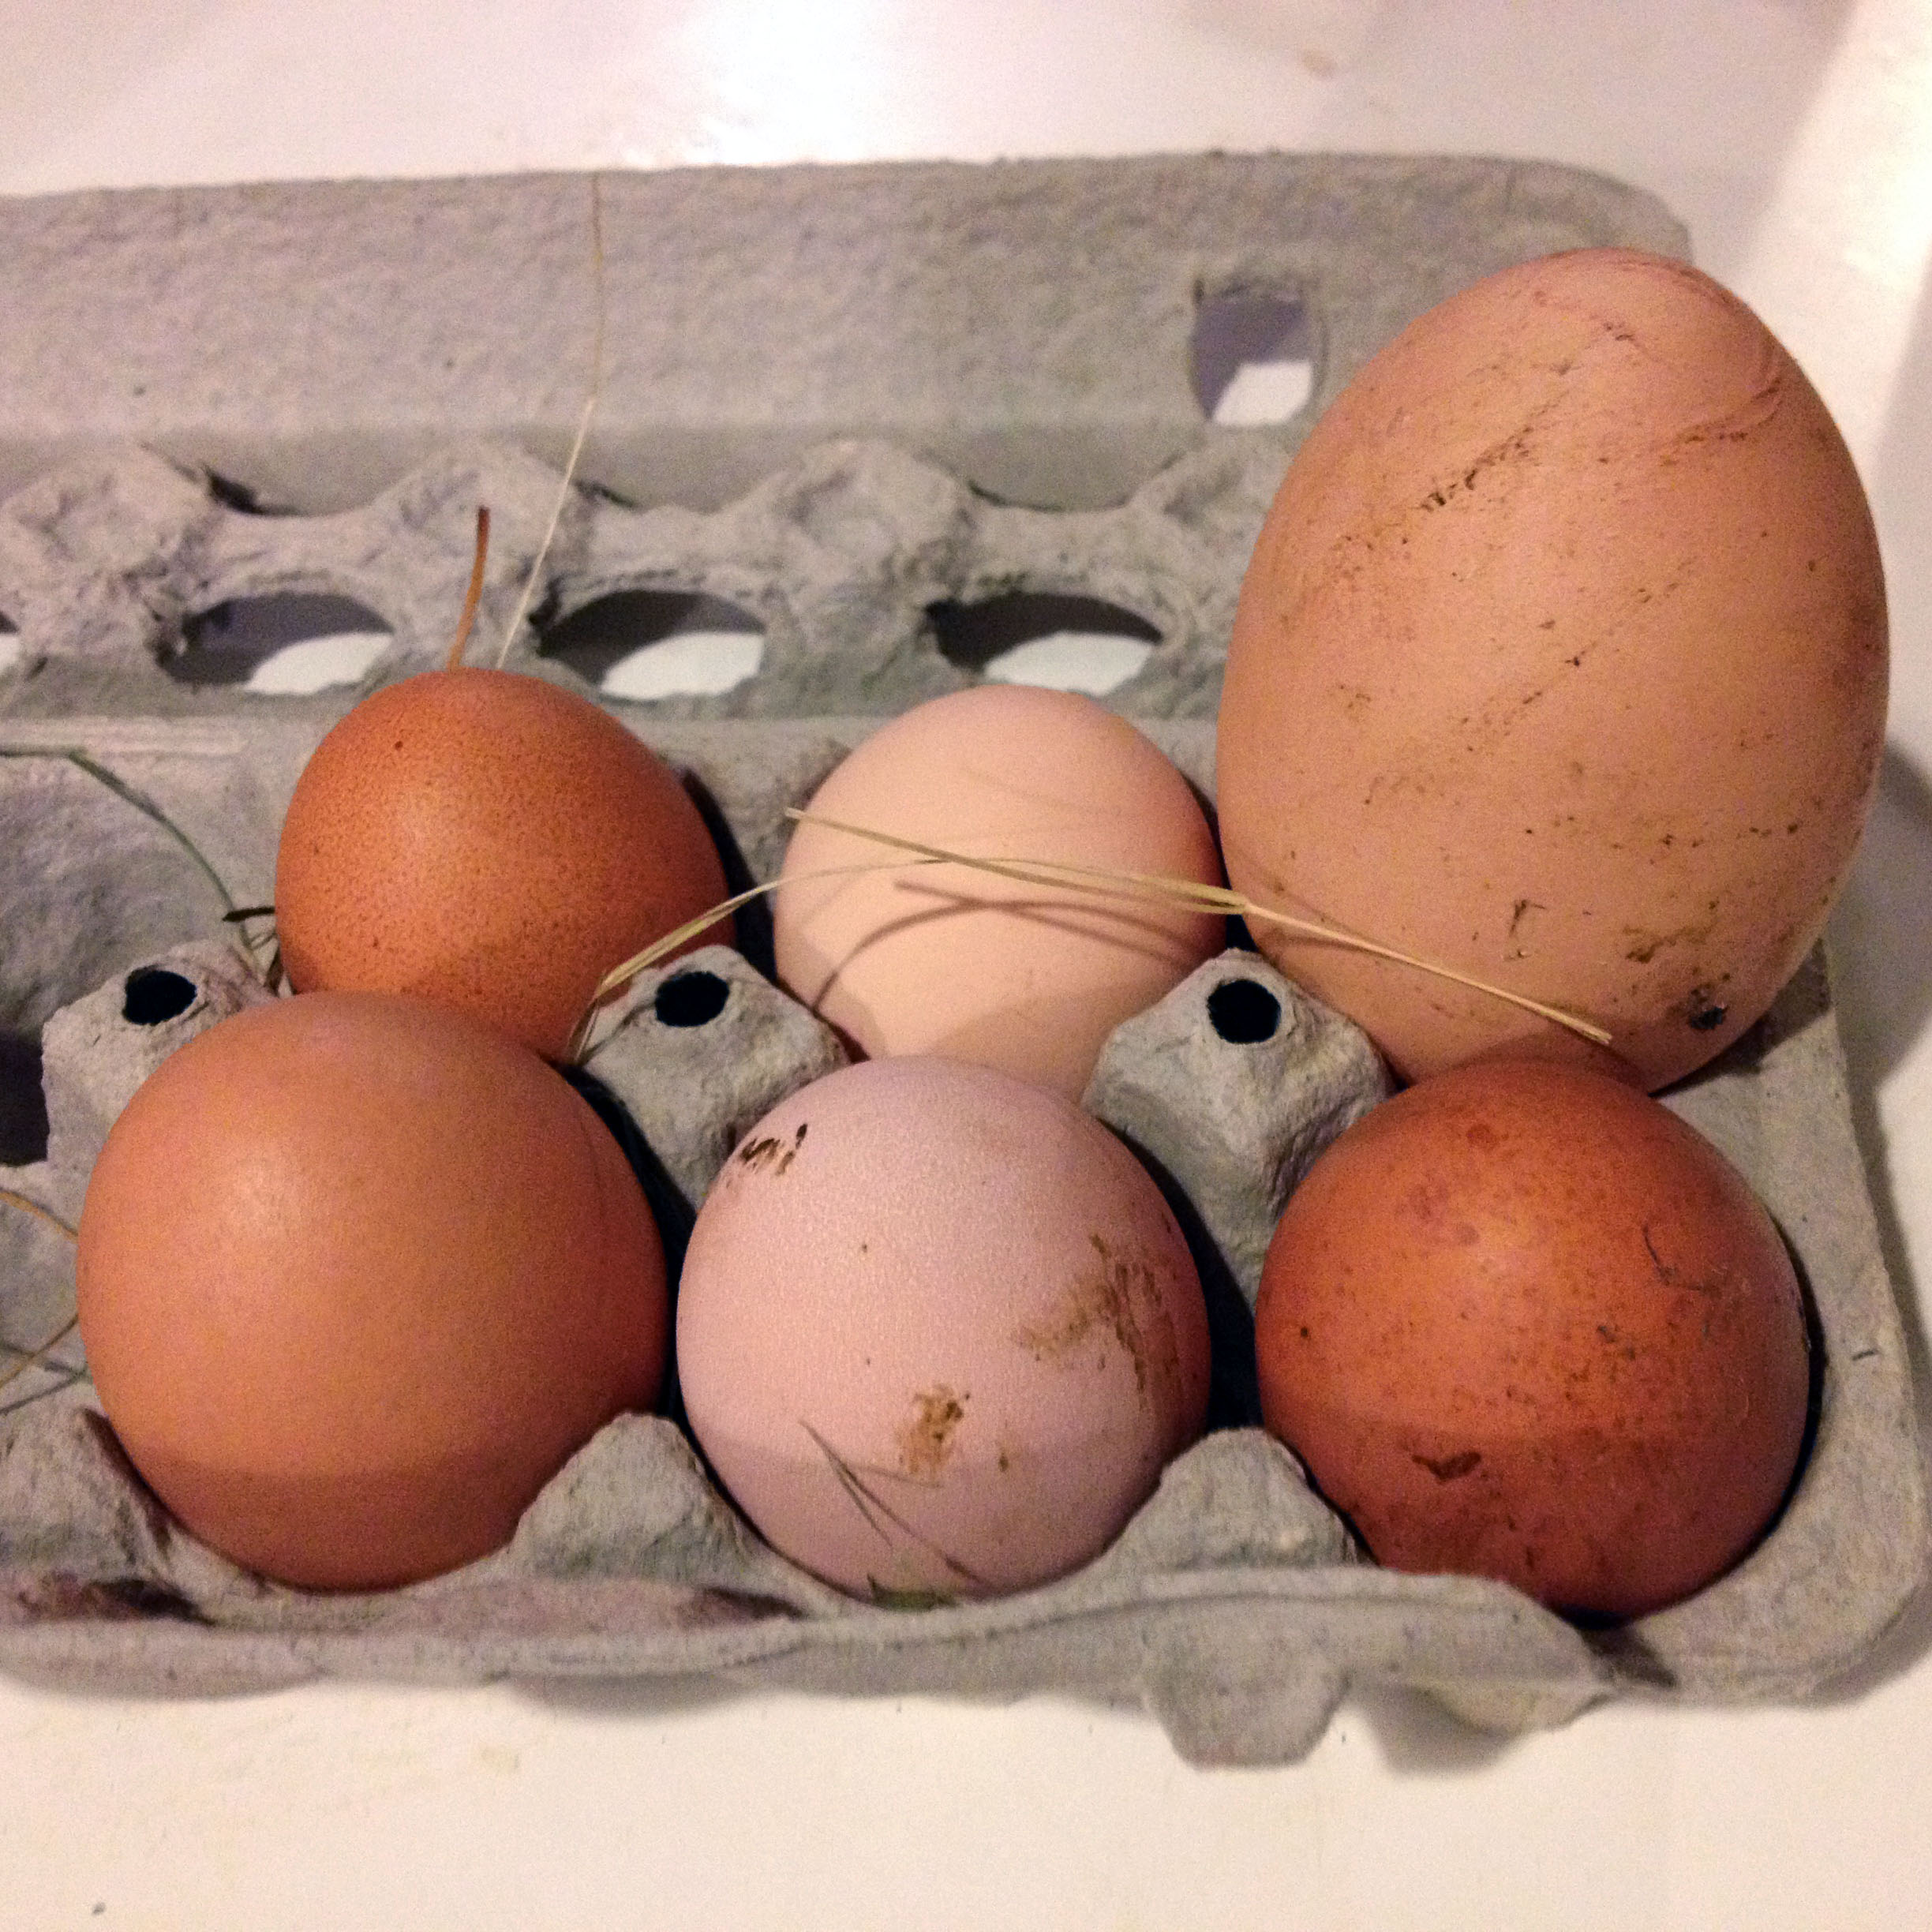 yes they are all chicken eggs!